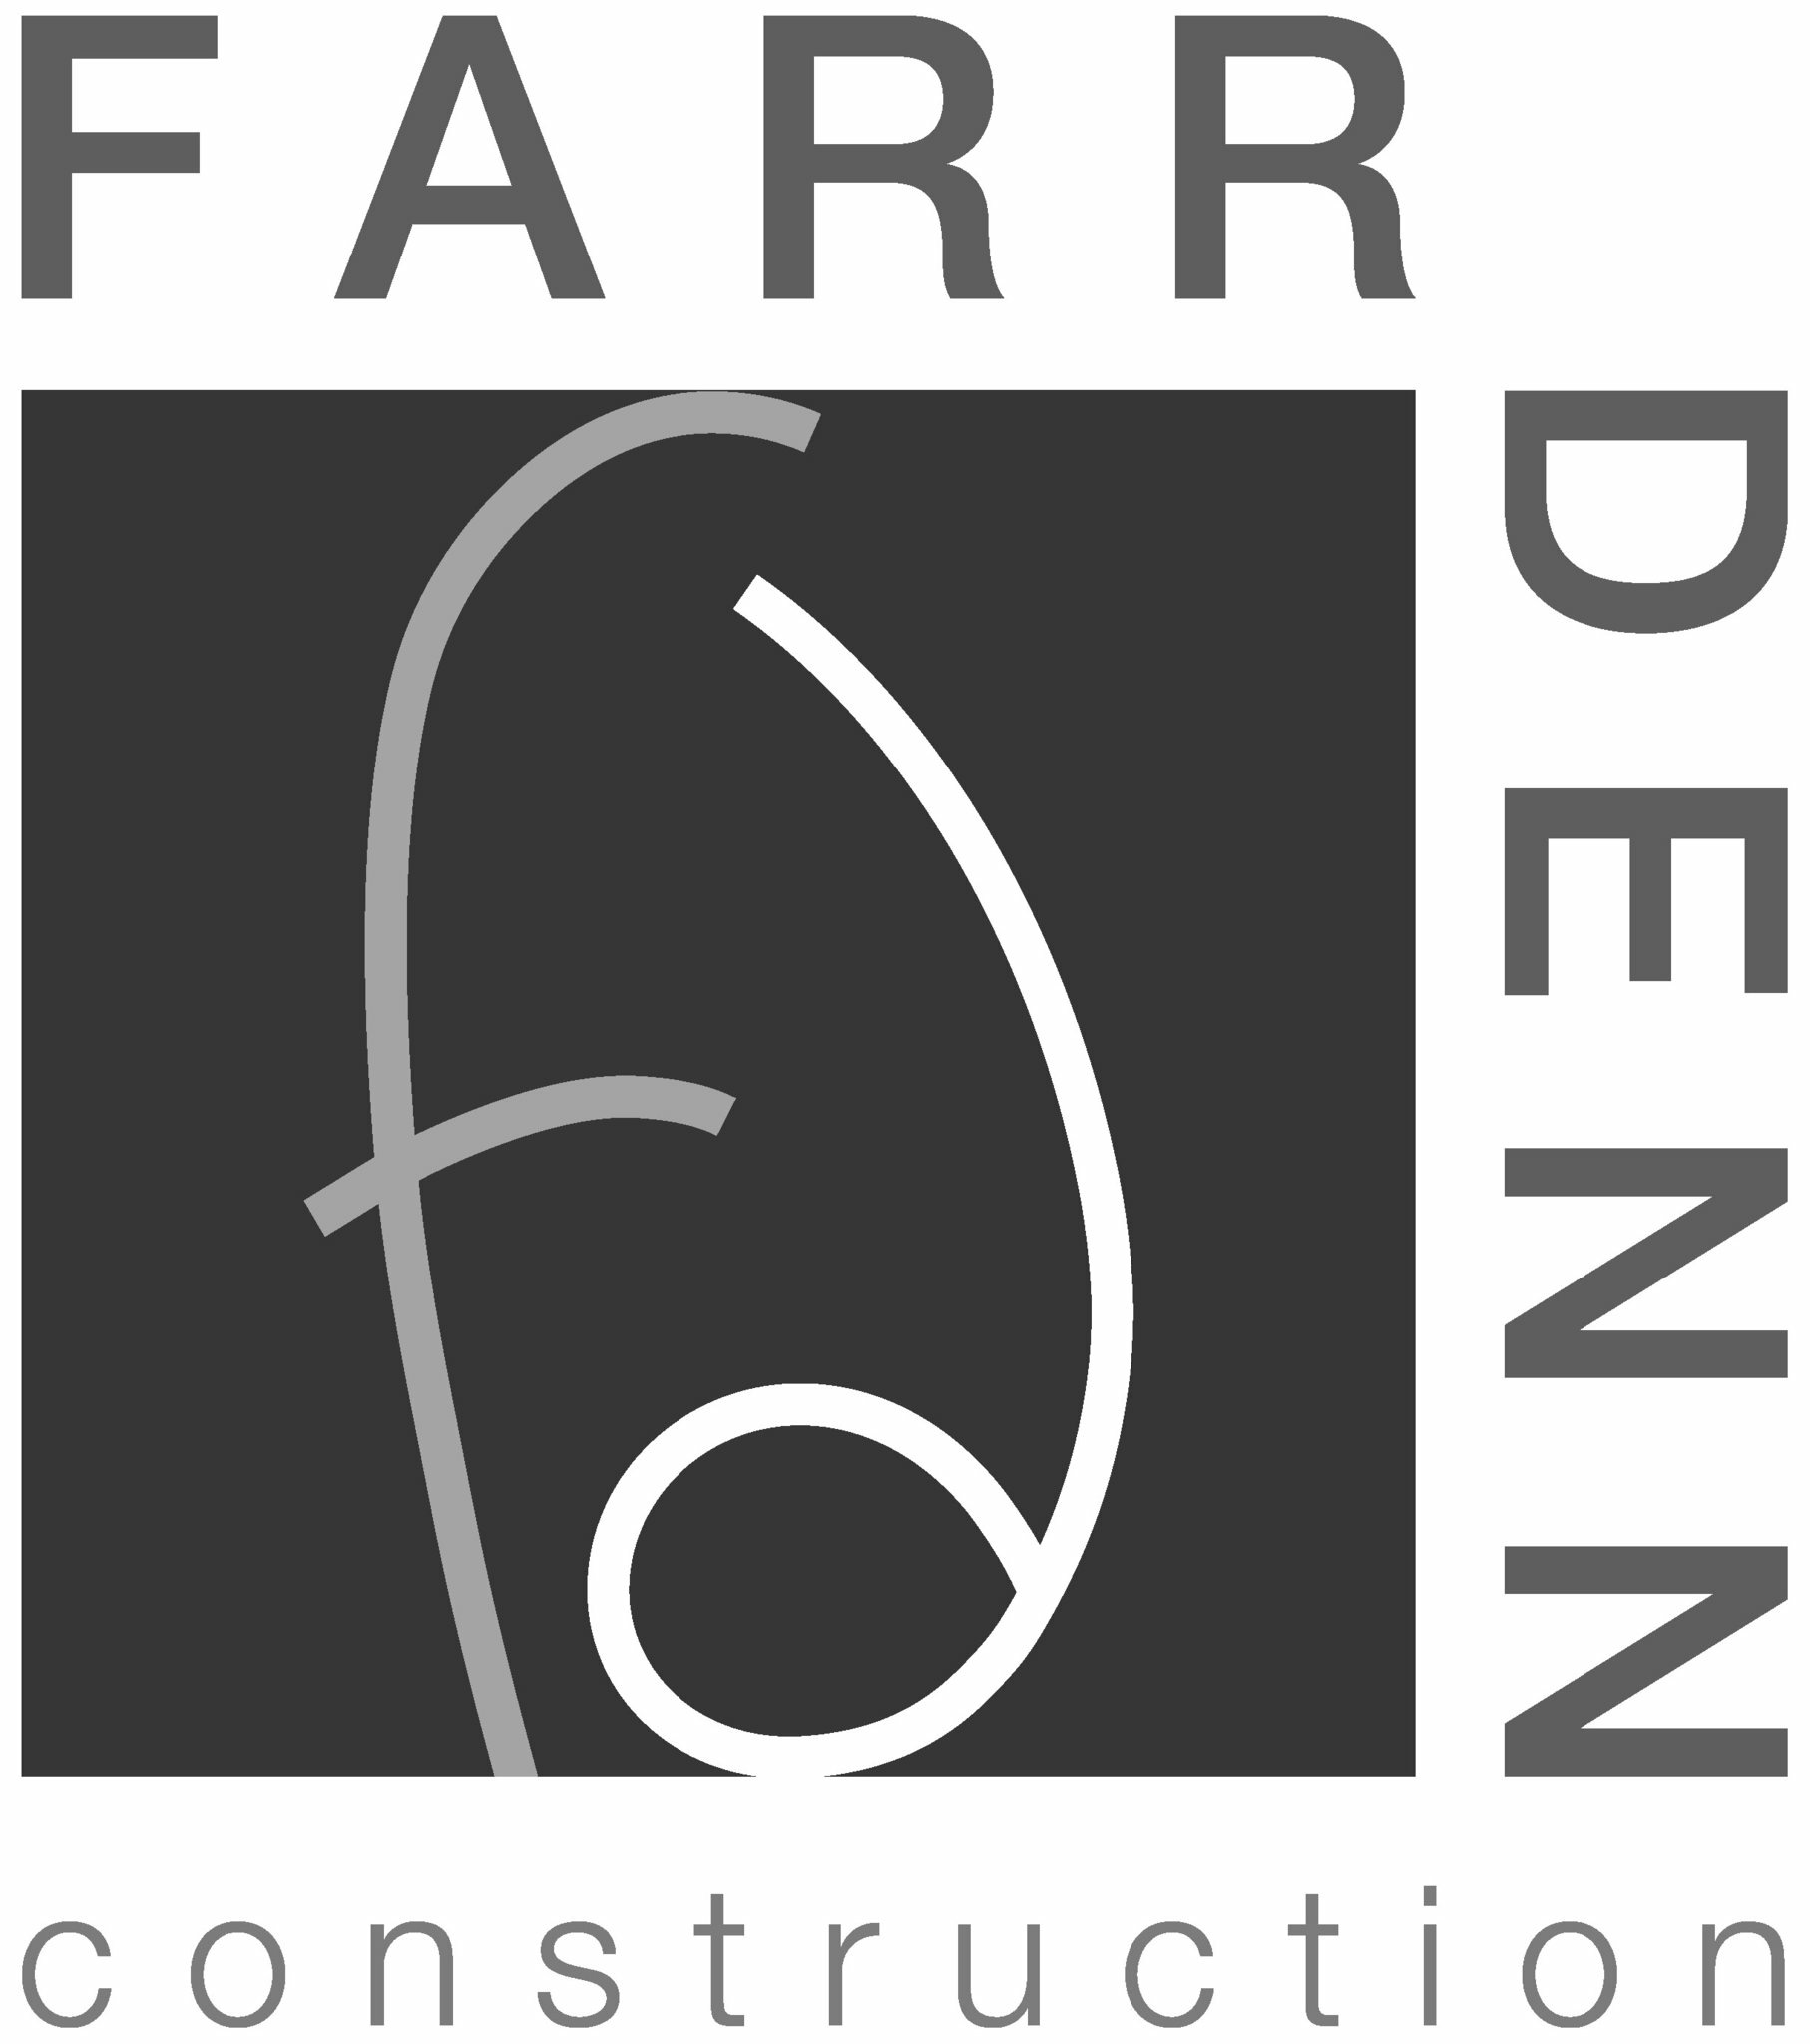 FarrDenn Construction